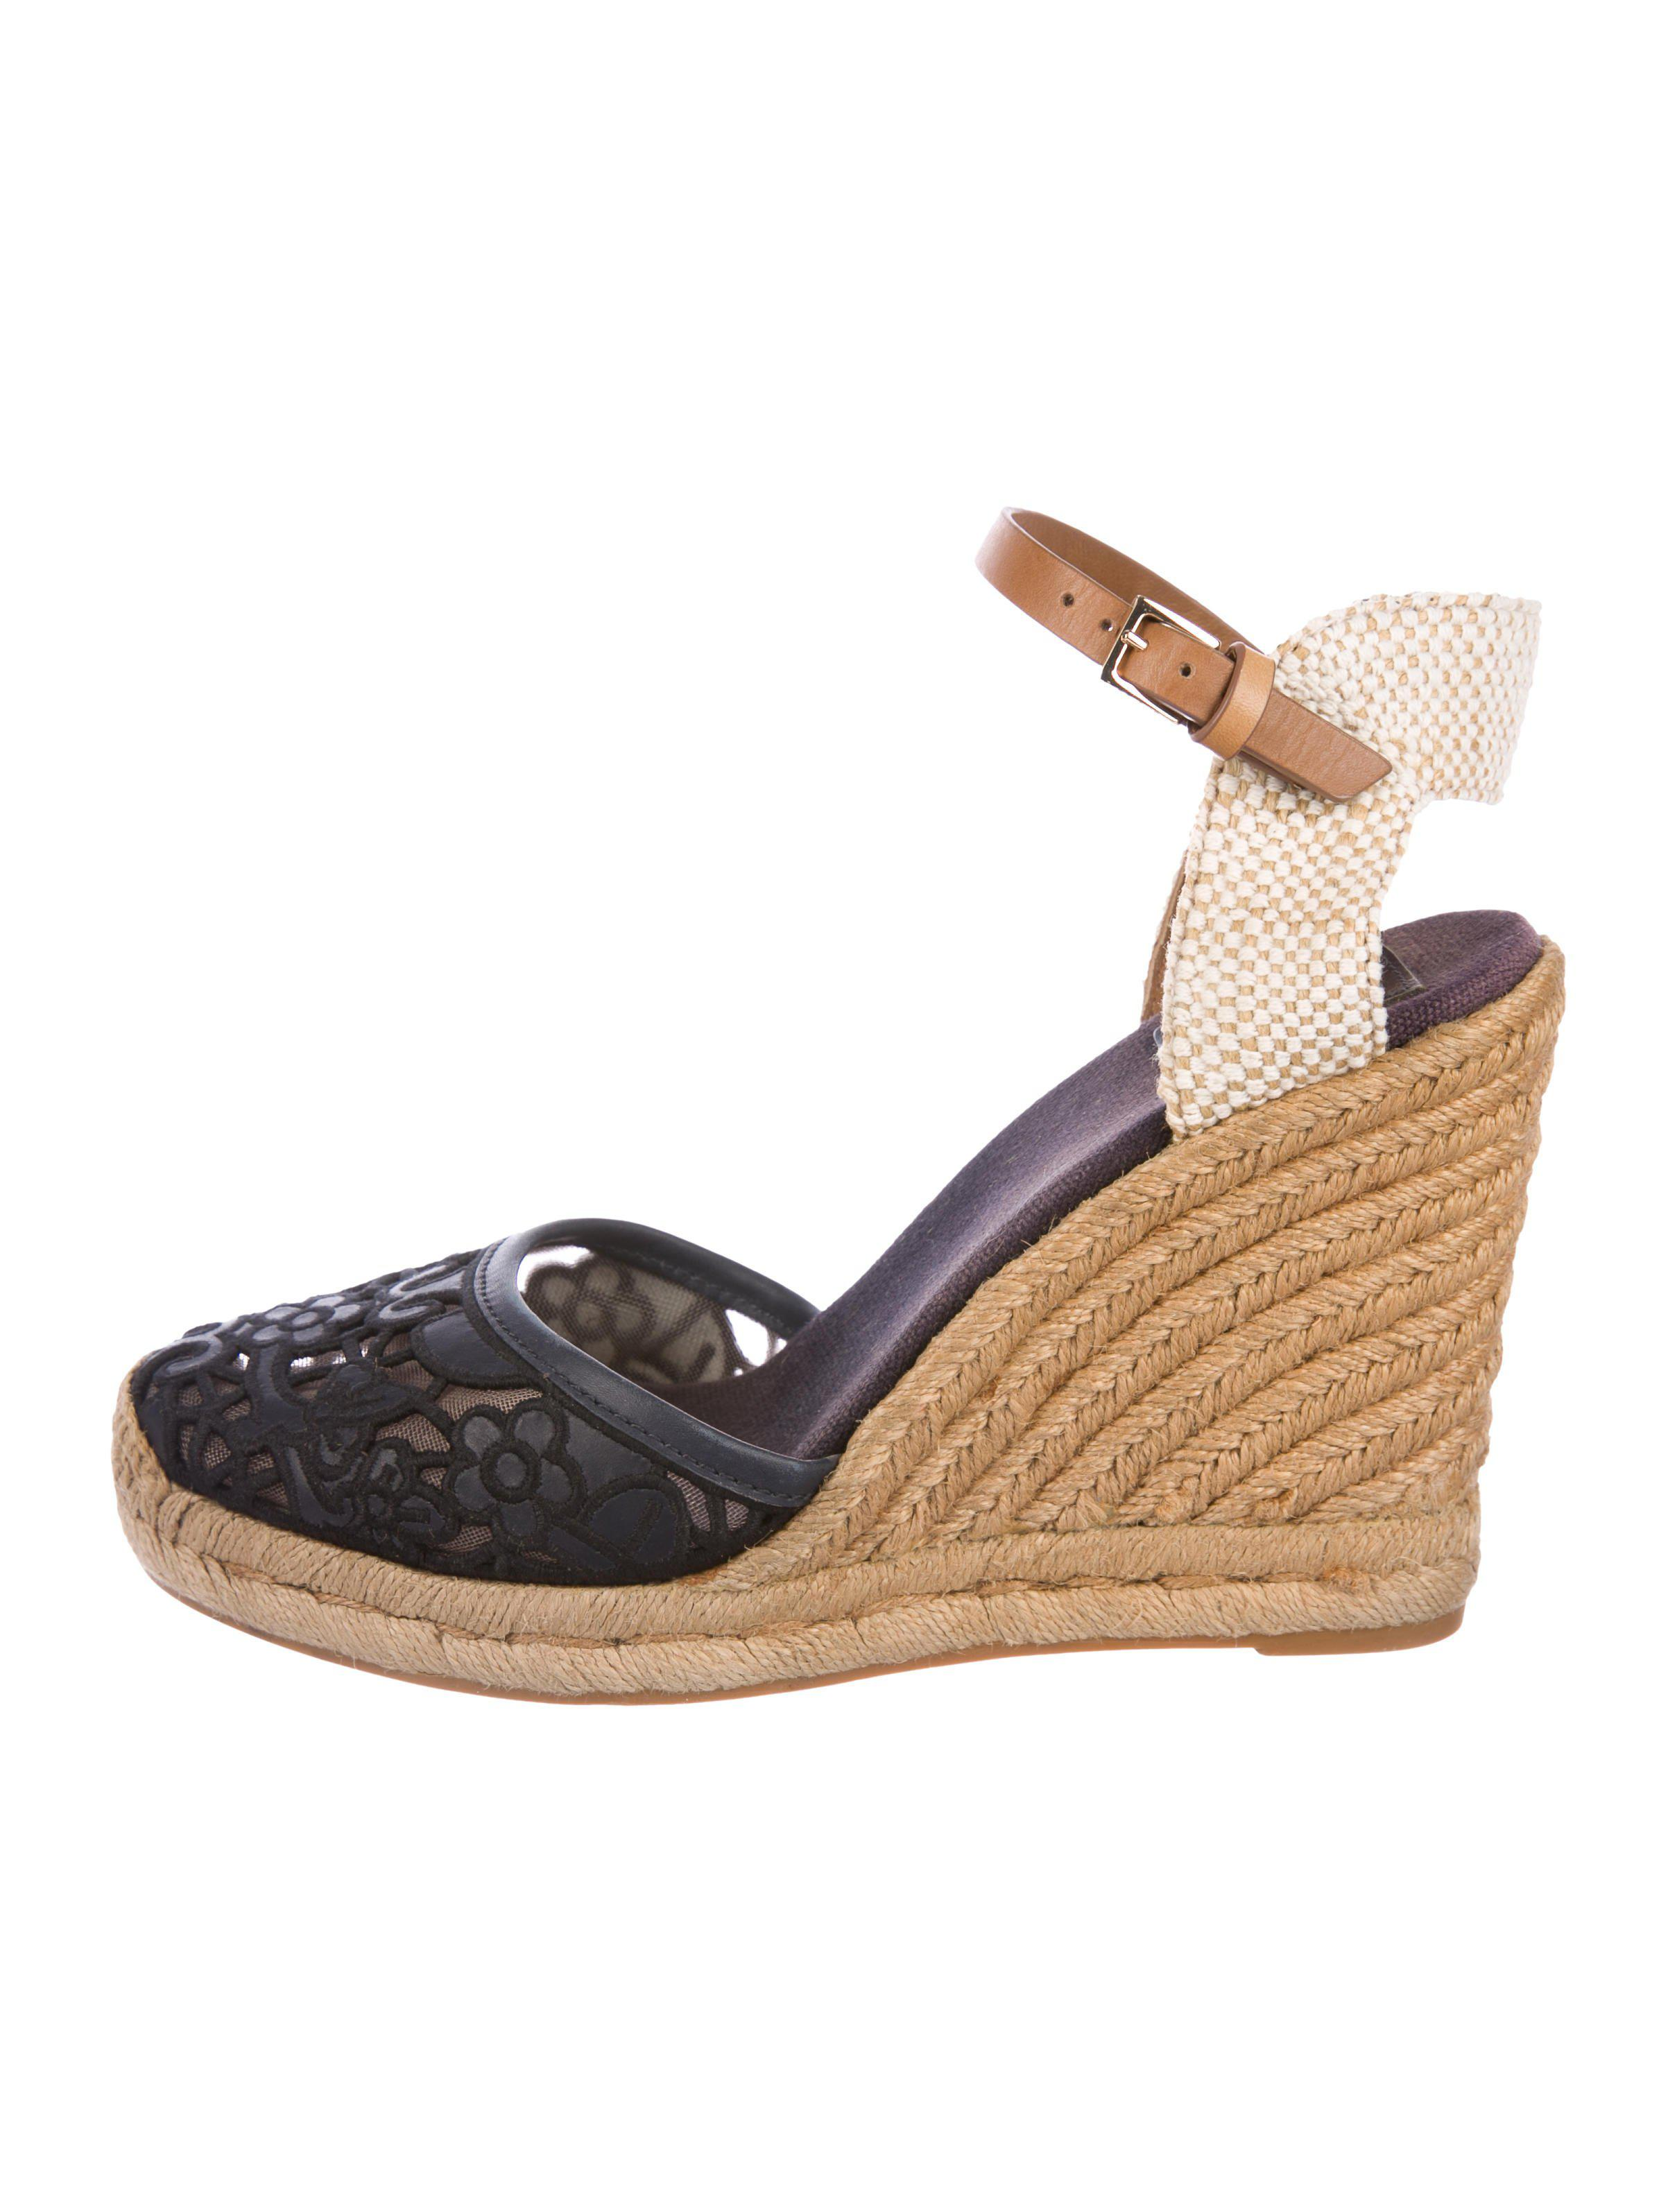 c883b8661 Lyst - Tory Burch Leather Espadrille Wedges in Blue